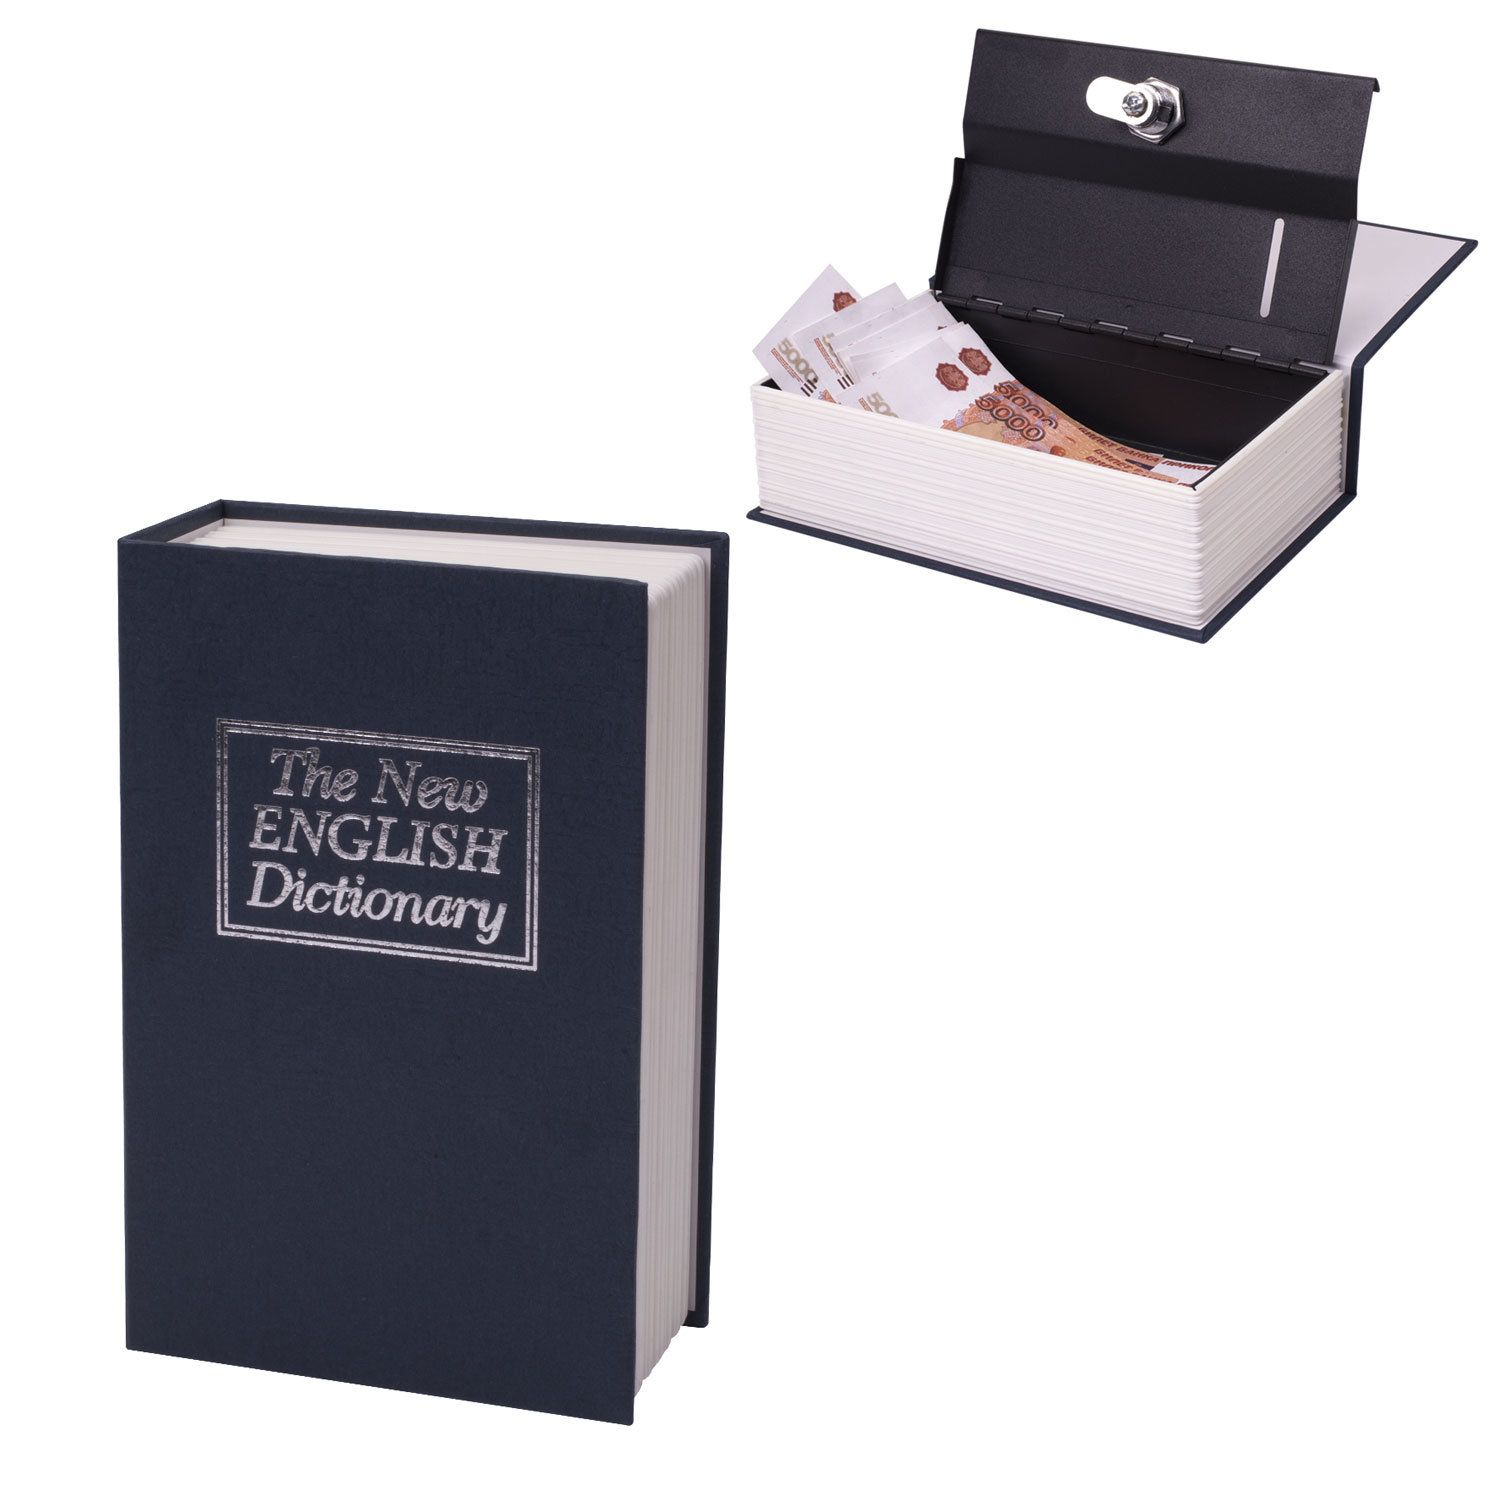 "Safe-book BRAUBERG ""English Dictionary"", 54x115x180 mm, key lock, dark blue"